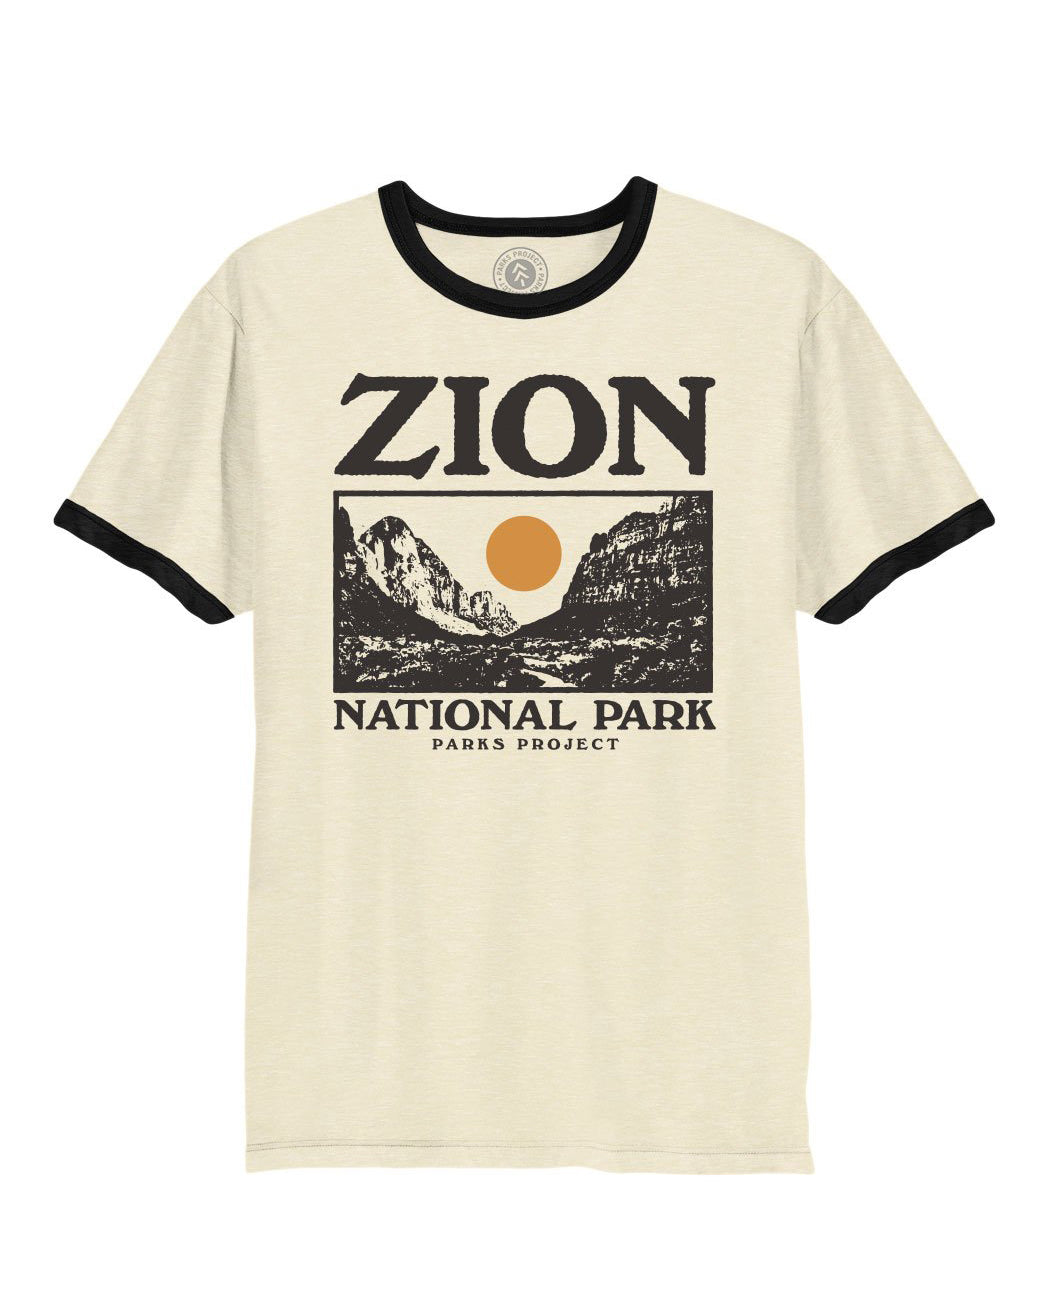 Zion Photo Ringer Tee | Parks Project | Vintage National Park Ringers